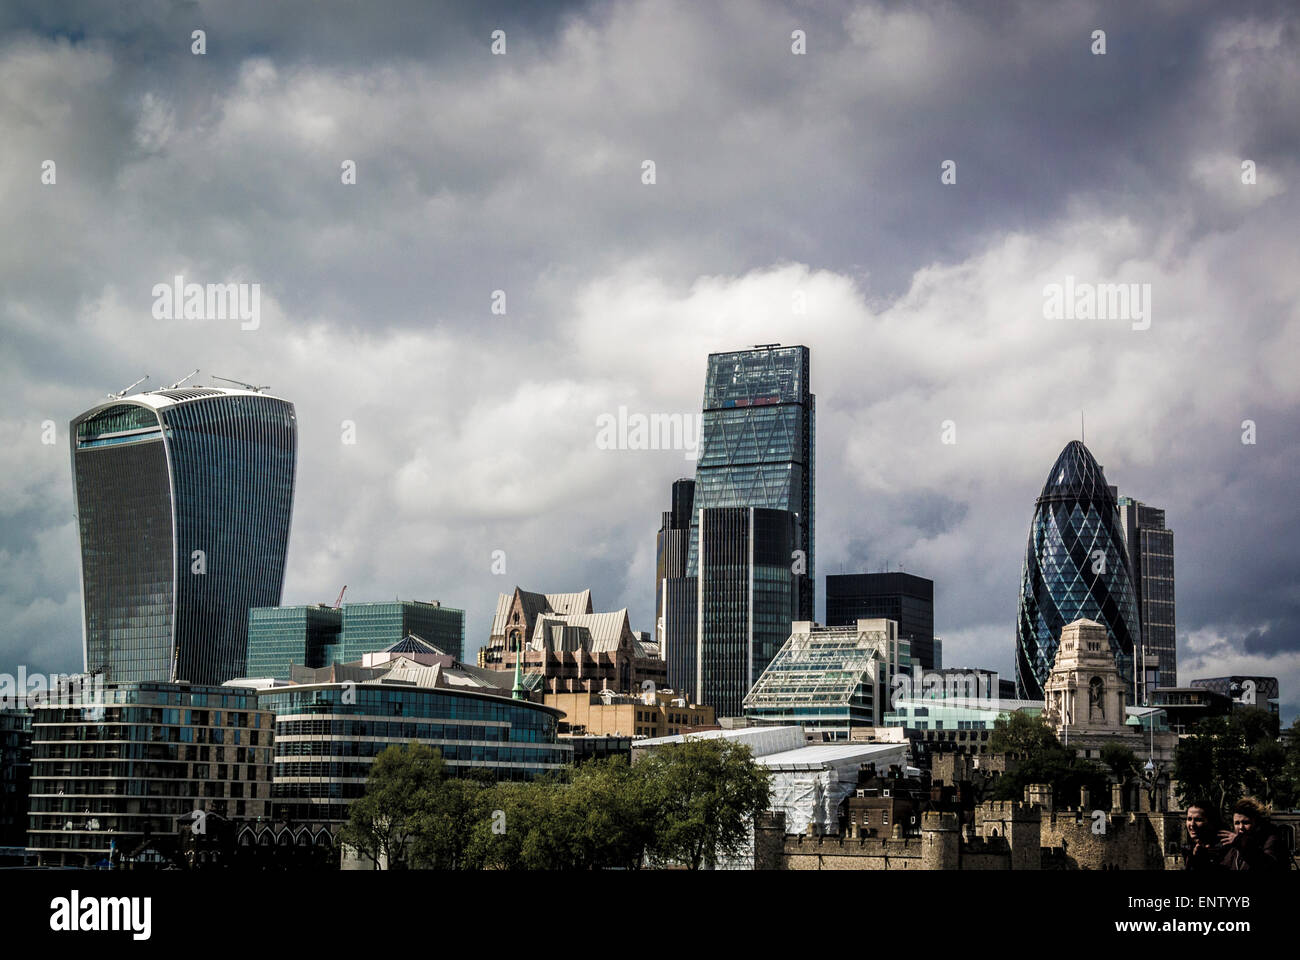 The Gherkin, cheesegrater and Walkie-Talkie building viewed from Tower Bridge. - Stock Image